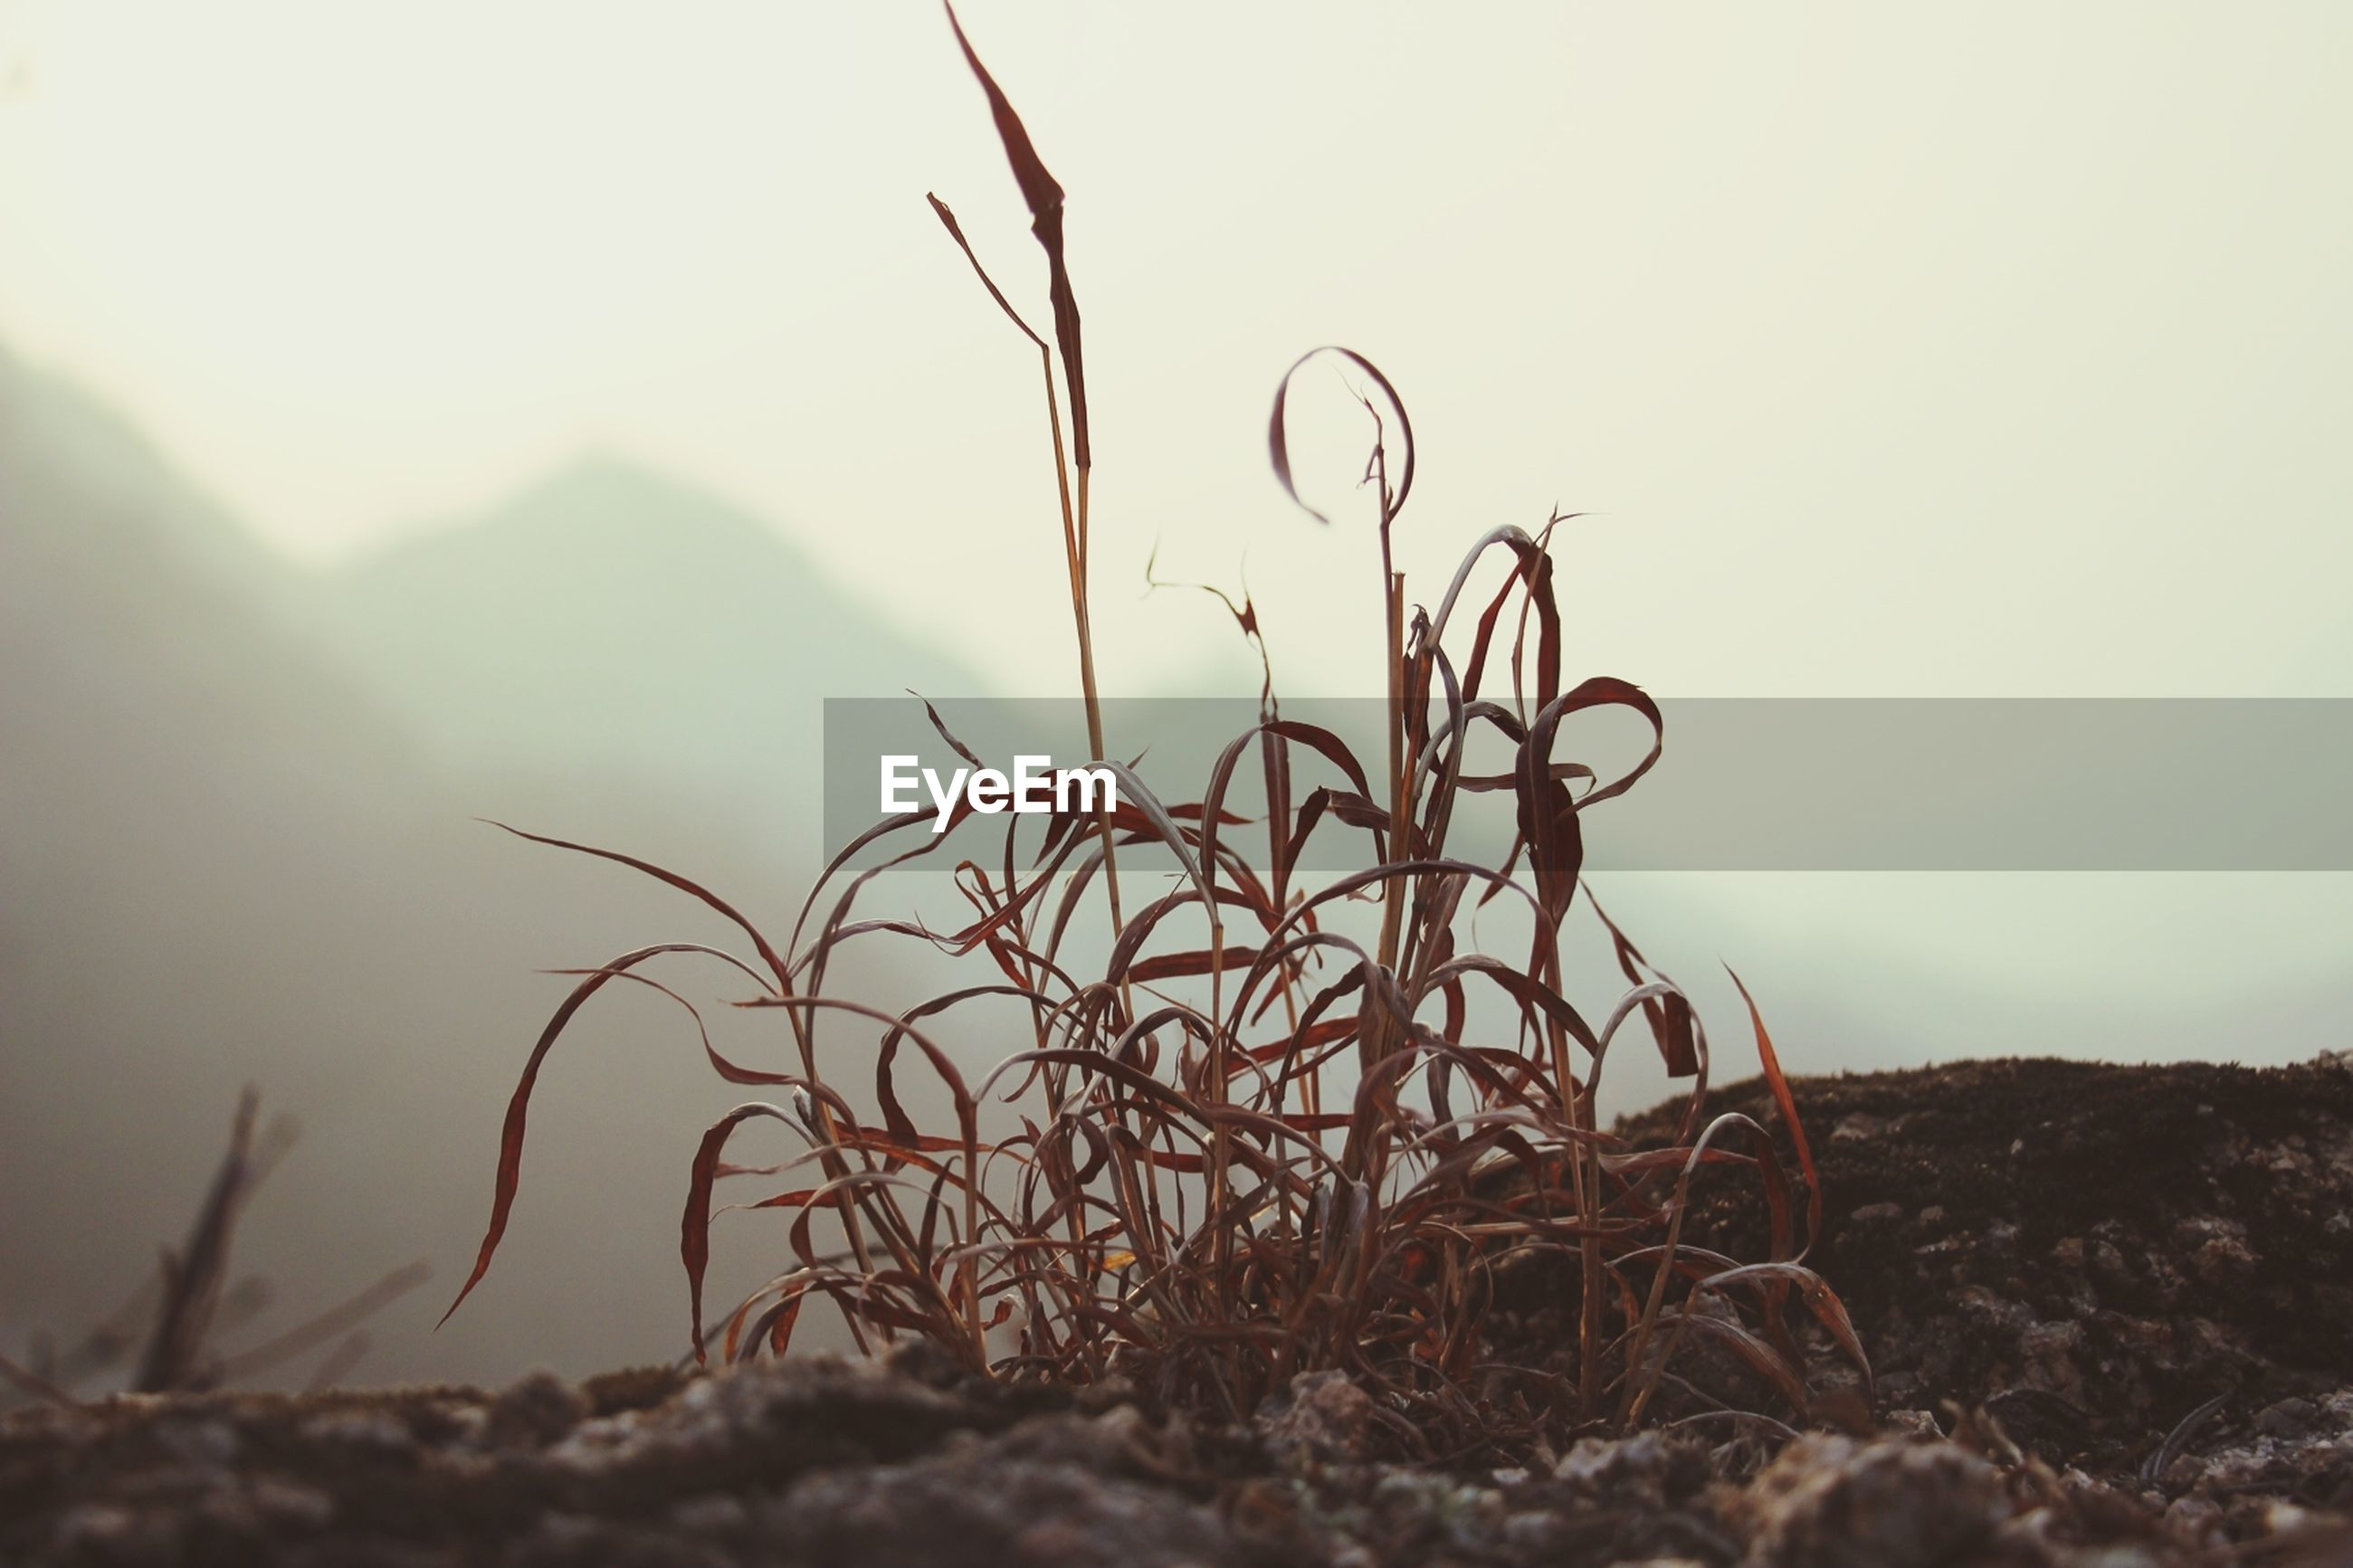 plant, field, clear sky, nature, tranquility, growth, dry, landscape, grass, focus on foreground, sky, close-up, dead plant, tranquil scene, outdoors, no people, copy space, day, selective focus, beauty in nature